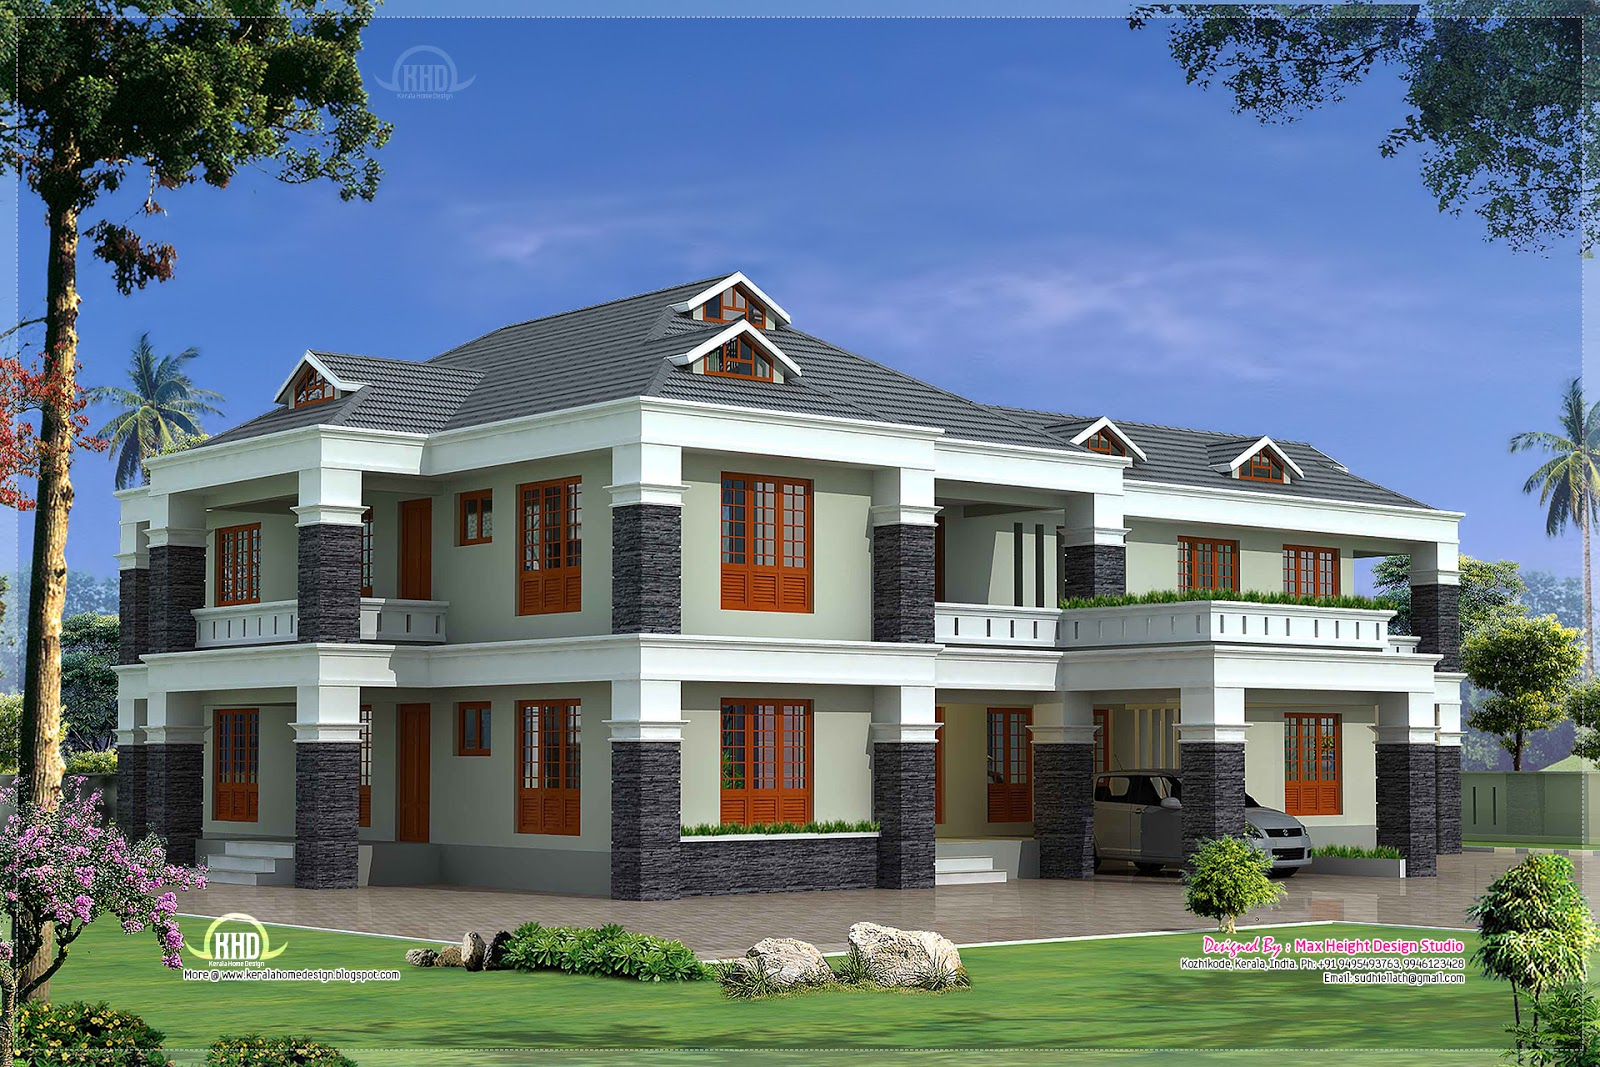 4000 luxury villa exterior kerala home design for 4000 sq ft building